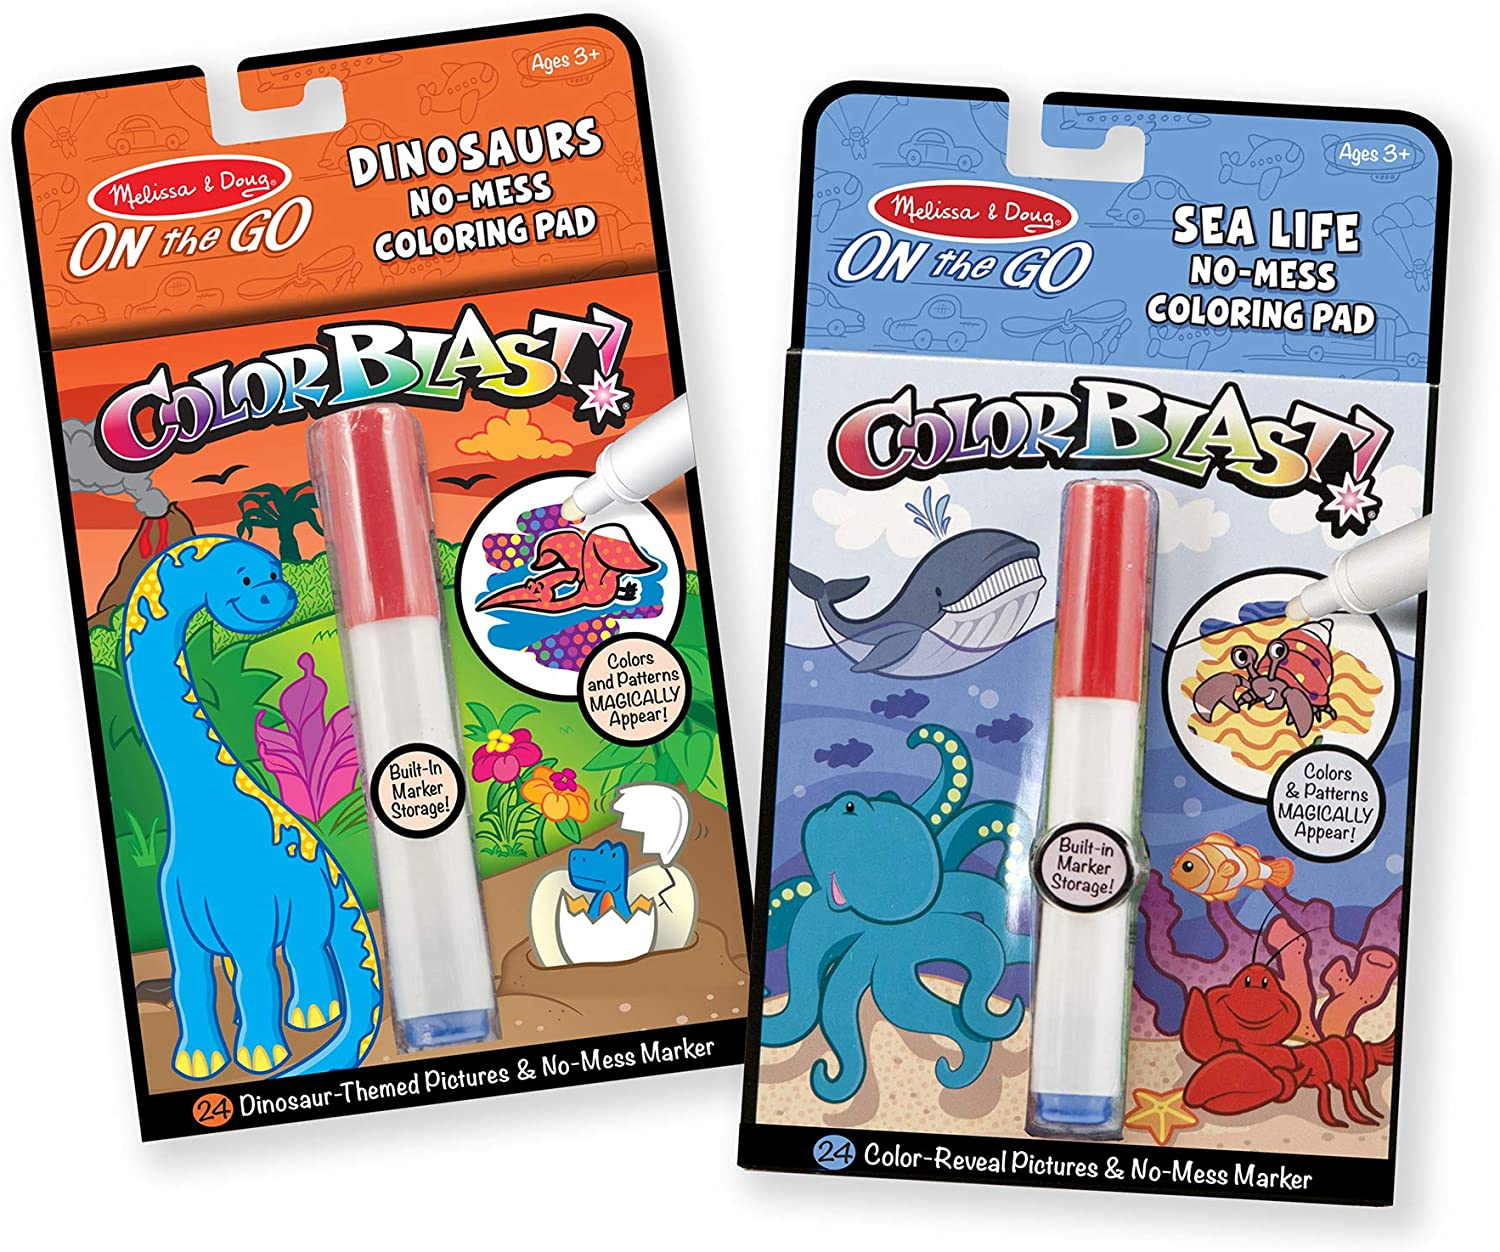 Melissa & Doug On the Go ColorBlast No-Mess Coloring Pad 2-Pack, Sea Life,  Dinosaurs (24 Pictures, Invisible Ink Marker, Great Gift for Girls and Boys  ...